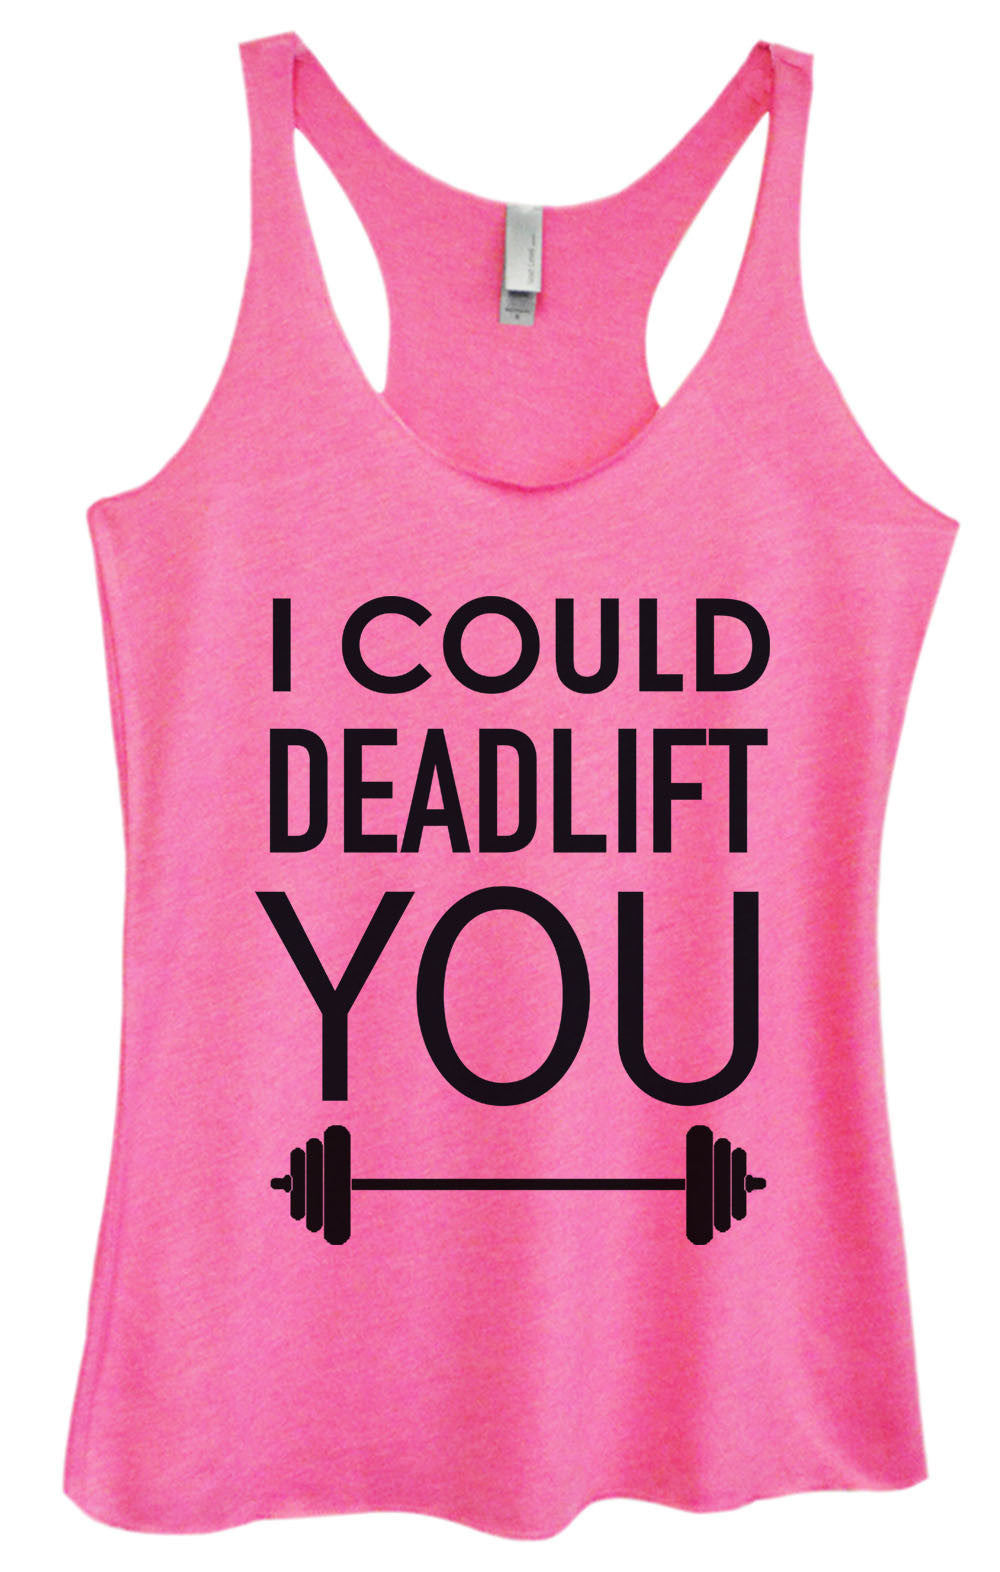 Womens Fashion Triblend Tank Top - I Could Deadlift You - Tri-552 - Funny Shirts Tank Tops Burnouts and Triblends  - 1